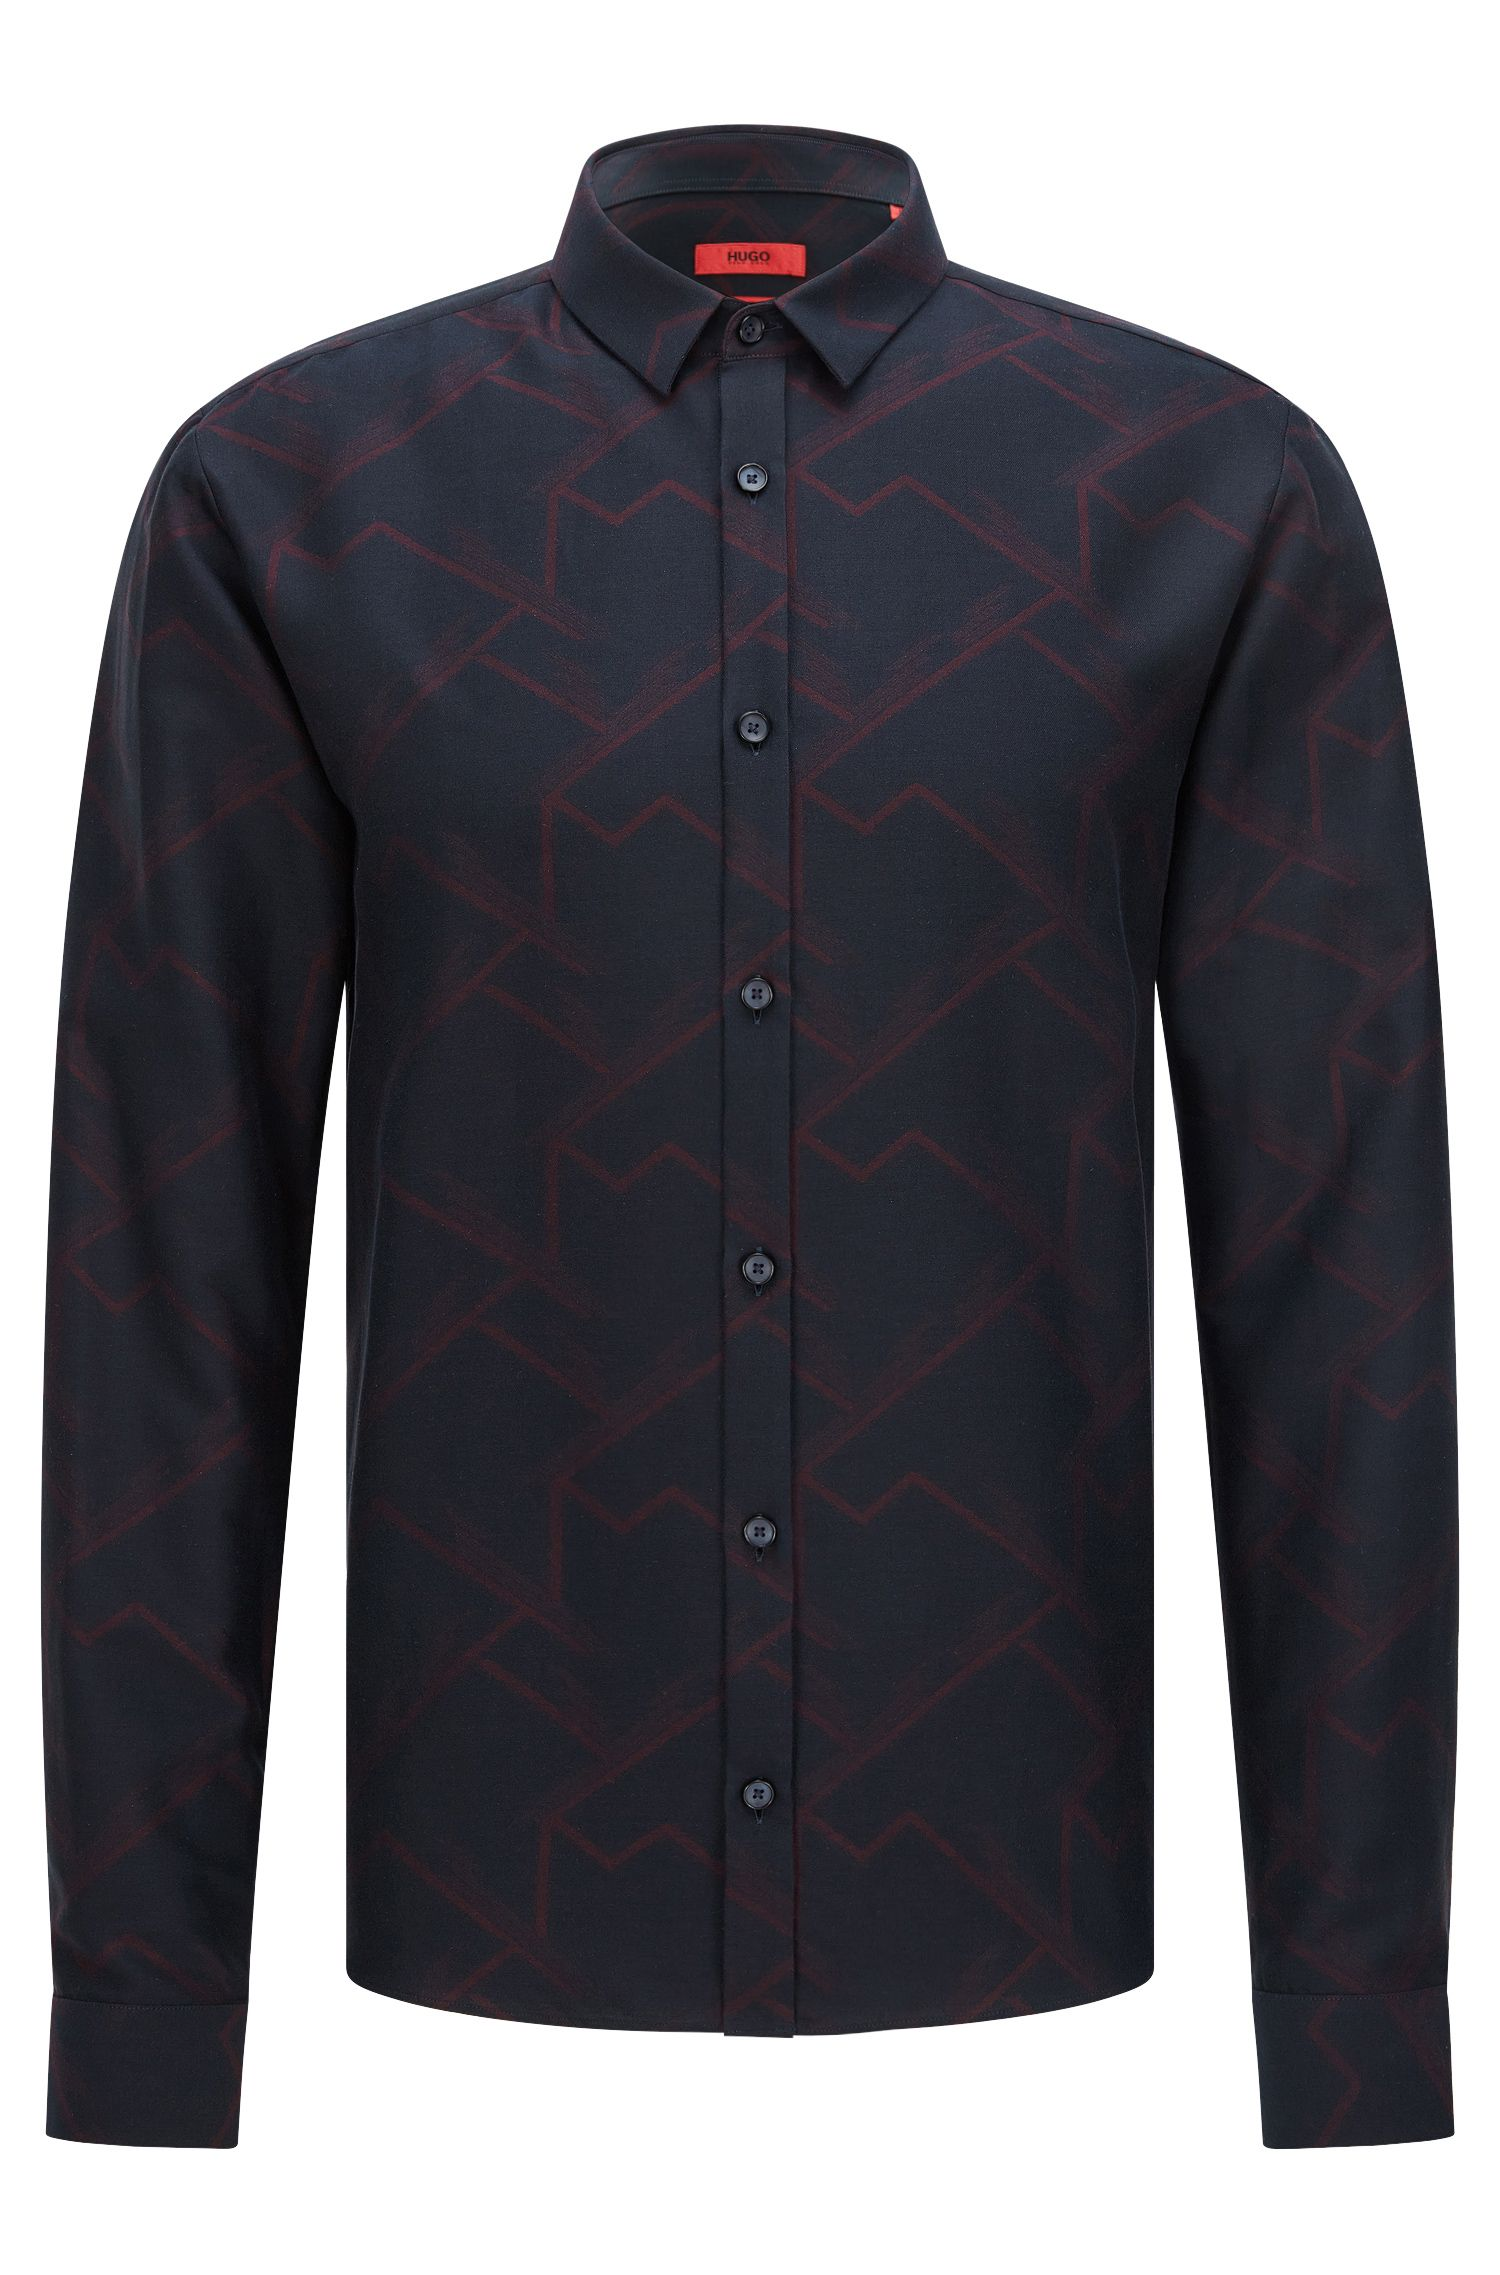 'Ero' | Extra-Slim Fit, Patterned Cotton Button Down Shirt